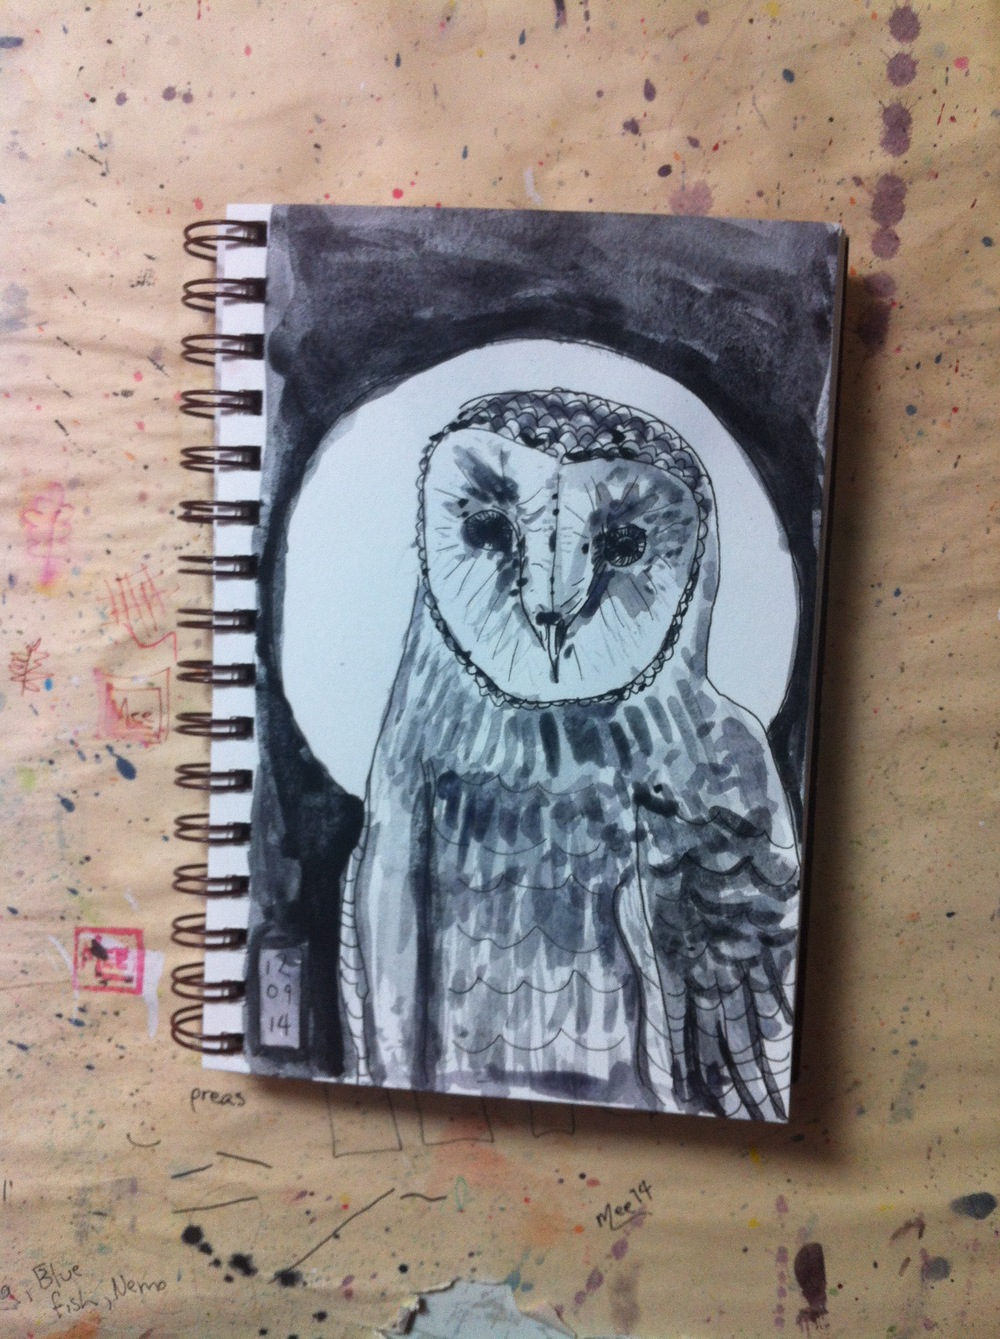 an owl from my imagination and sketches from the Museum of Natural History in NYC